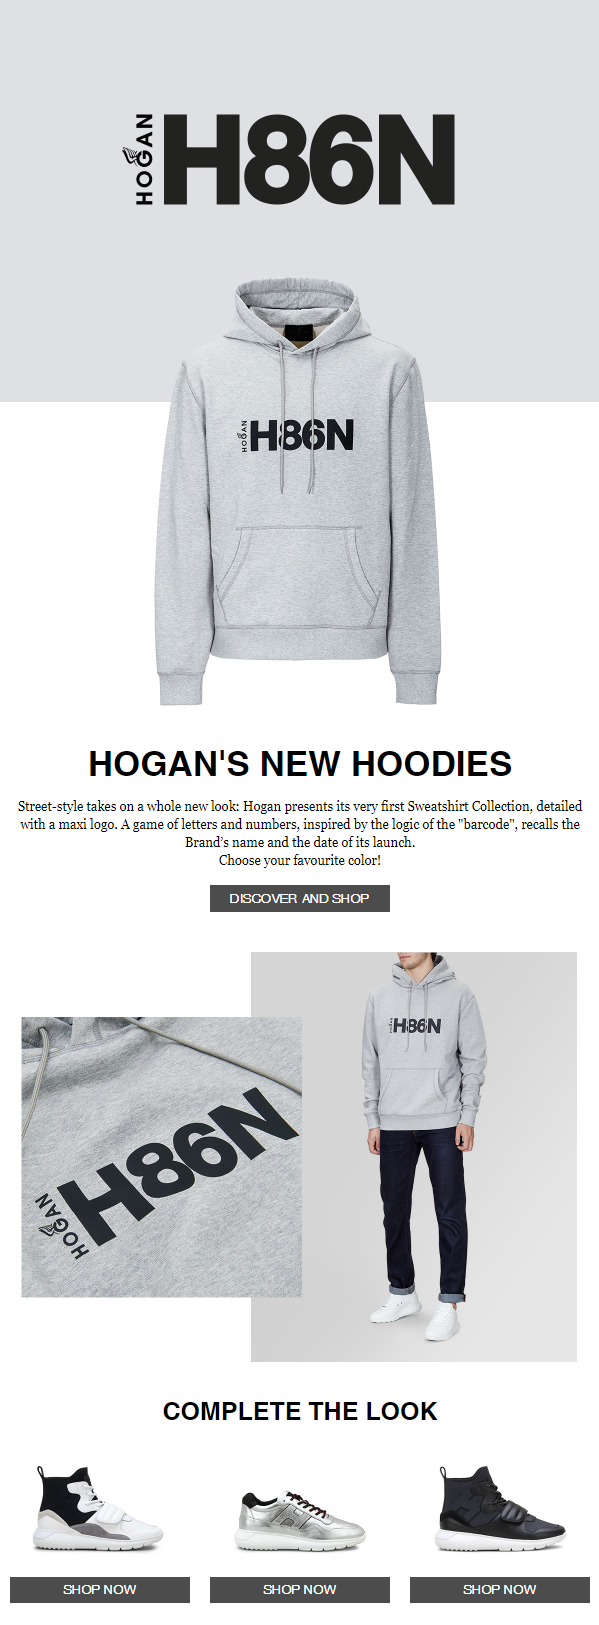 Street-style takes on a whole new look: Hogan presents its very first Sweatshirt Collection, detaile...